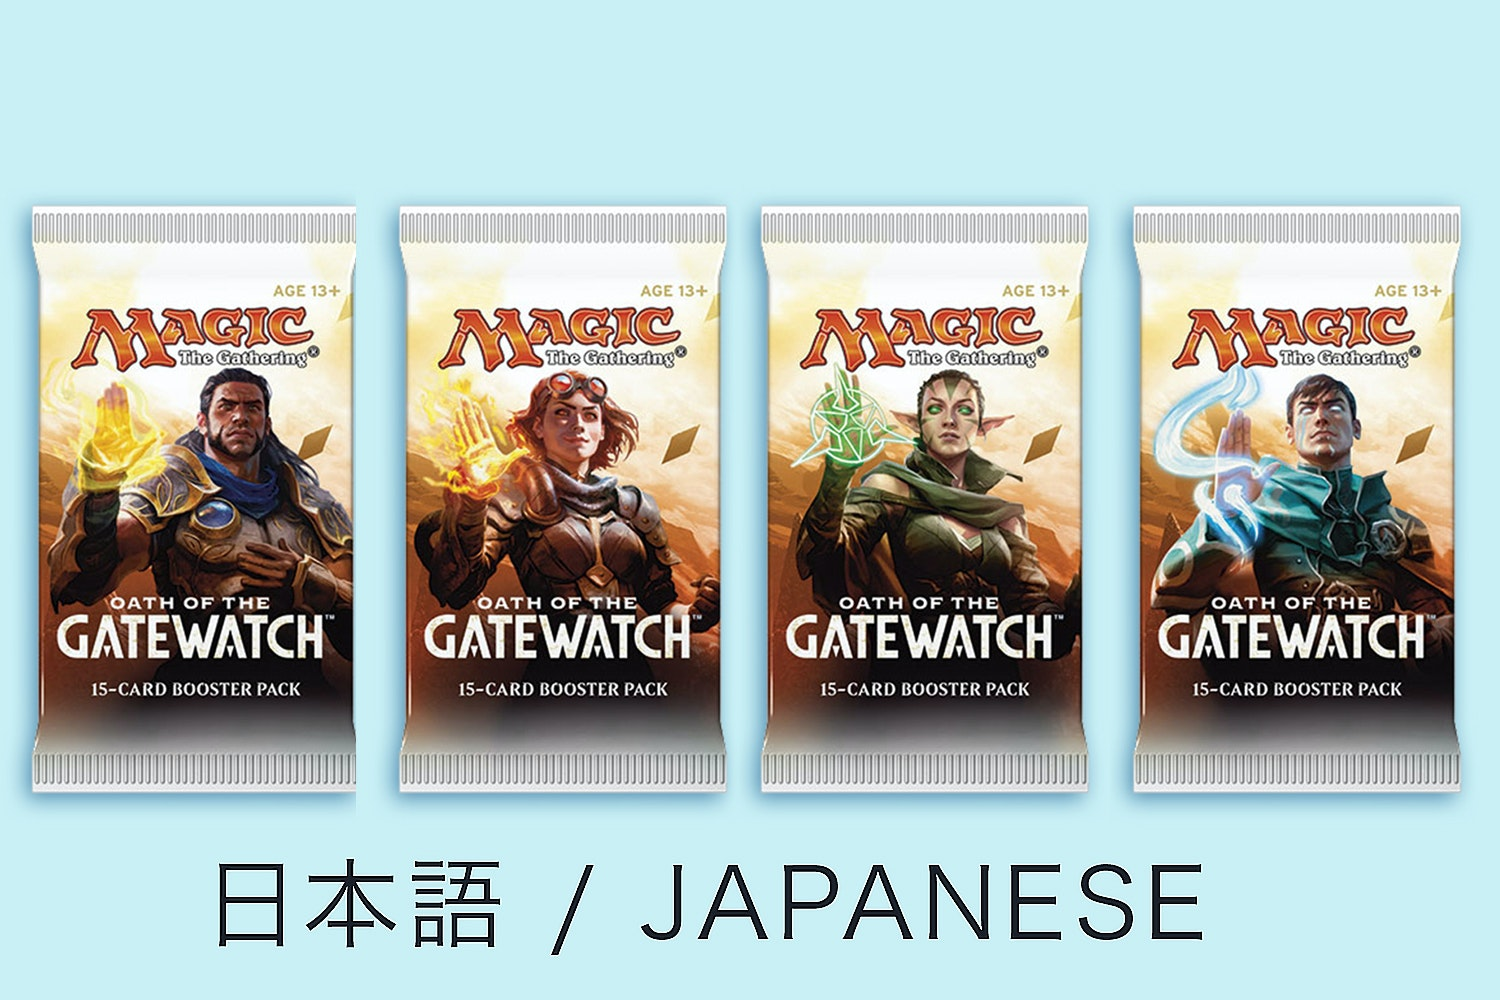 Oath of Gatewatch in Japanese